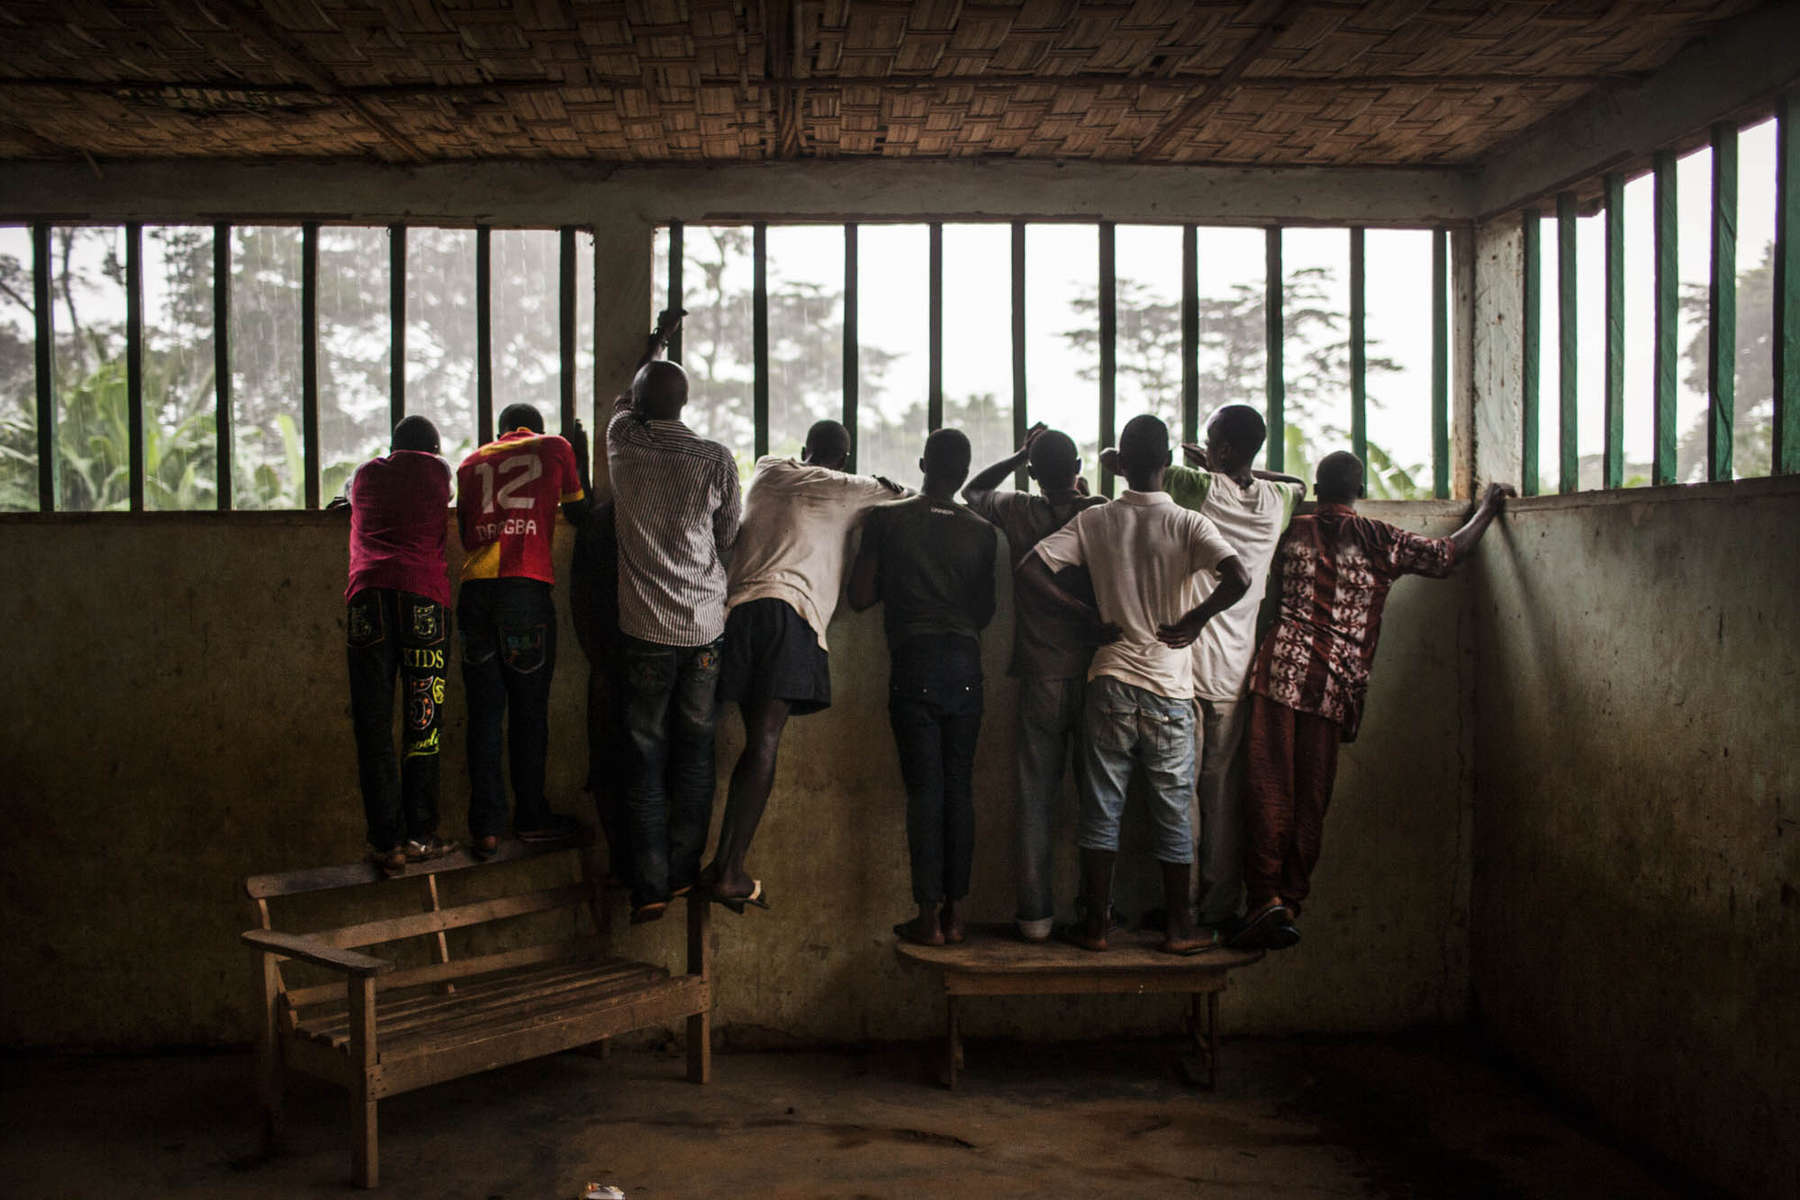 Residents of the village of Sengema, Sierra Leone gather inside a school house to watch Red Cross workers prepare the body of a many suspected of dying of Ebola   on Saturday, August 18, 2014. (Pete Muller/Prime for the Washington Post)